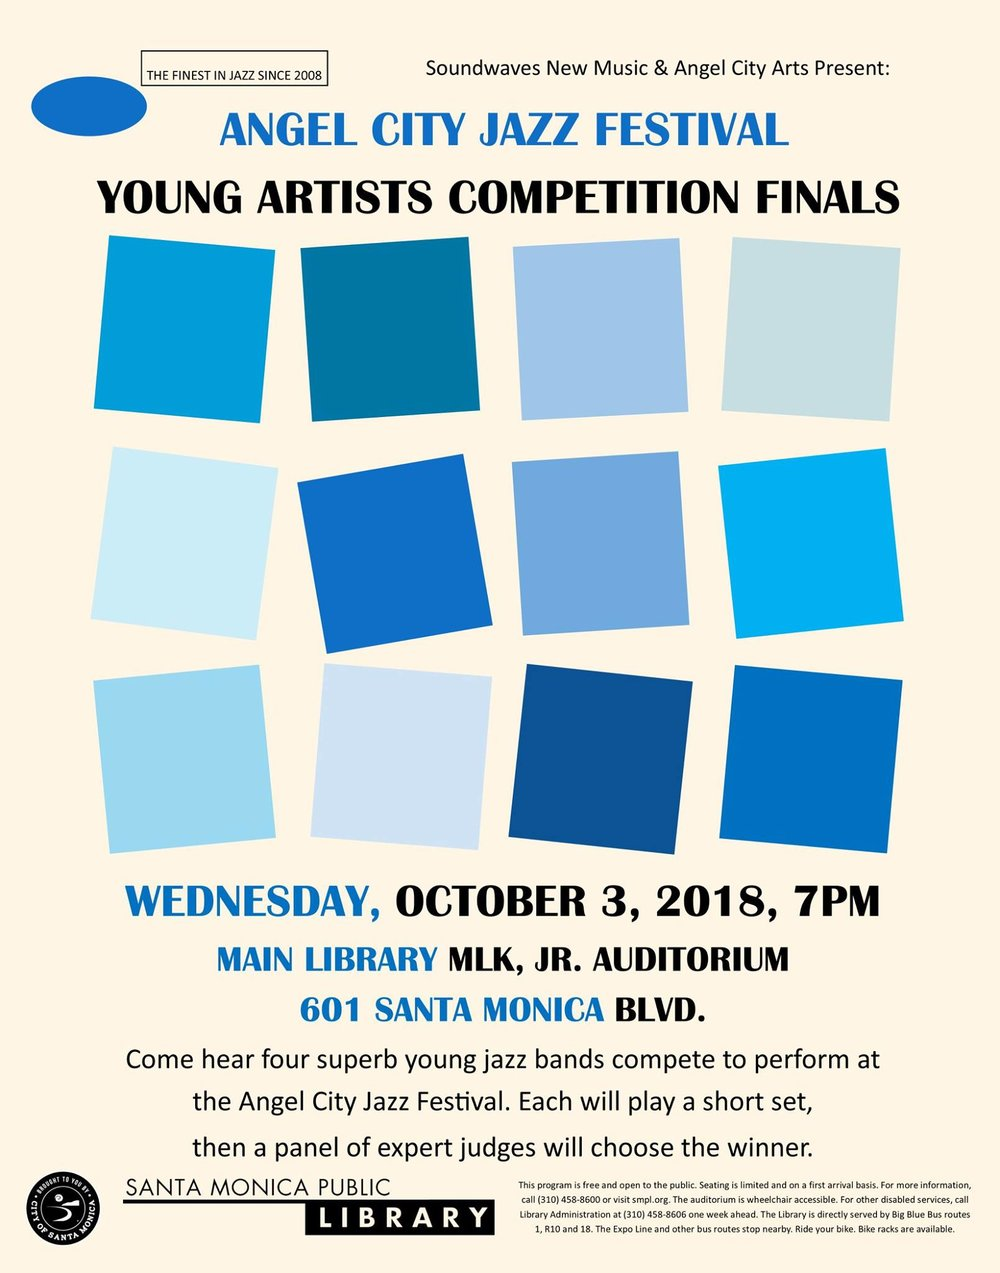 Angel City Arts Young Artist Competition FinalsFREE EVENT - Two finalist ensembles for our annual young artist competition will perform a 20 minutes live set each in front of a panel of judges. The winner will receive a $1500 cash prize and will perform an opening set on Friday October 5th at LACMA.This event is free and open to the public. Come out and support the future generation of jazz innovators.